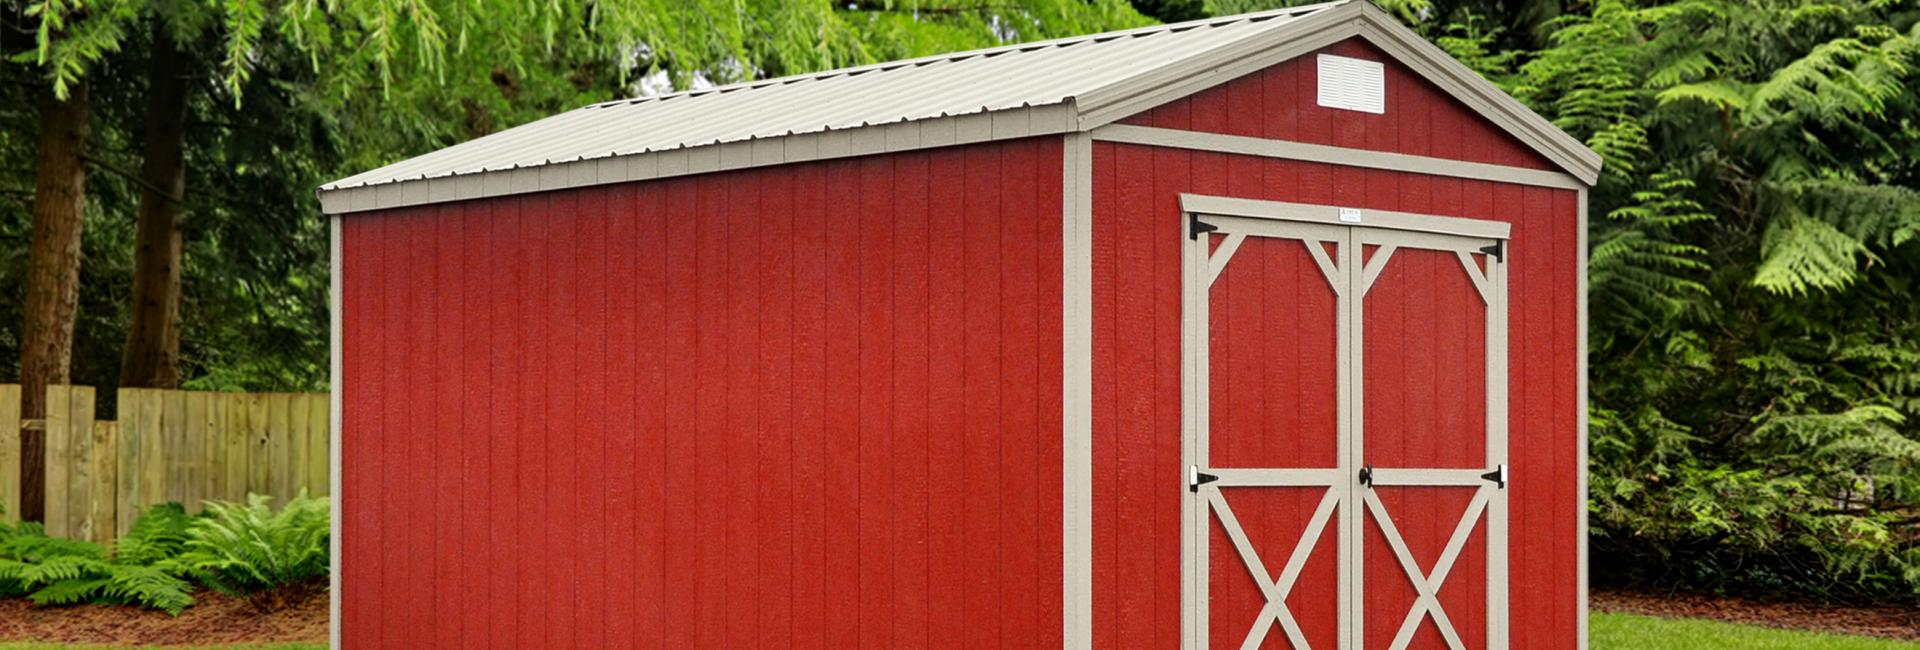 Painted utility shed in red with white trim detail placed in fenced in residential backyard next to various trees